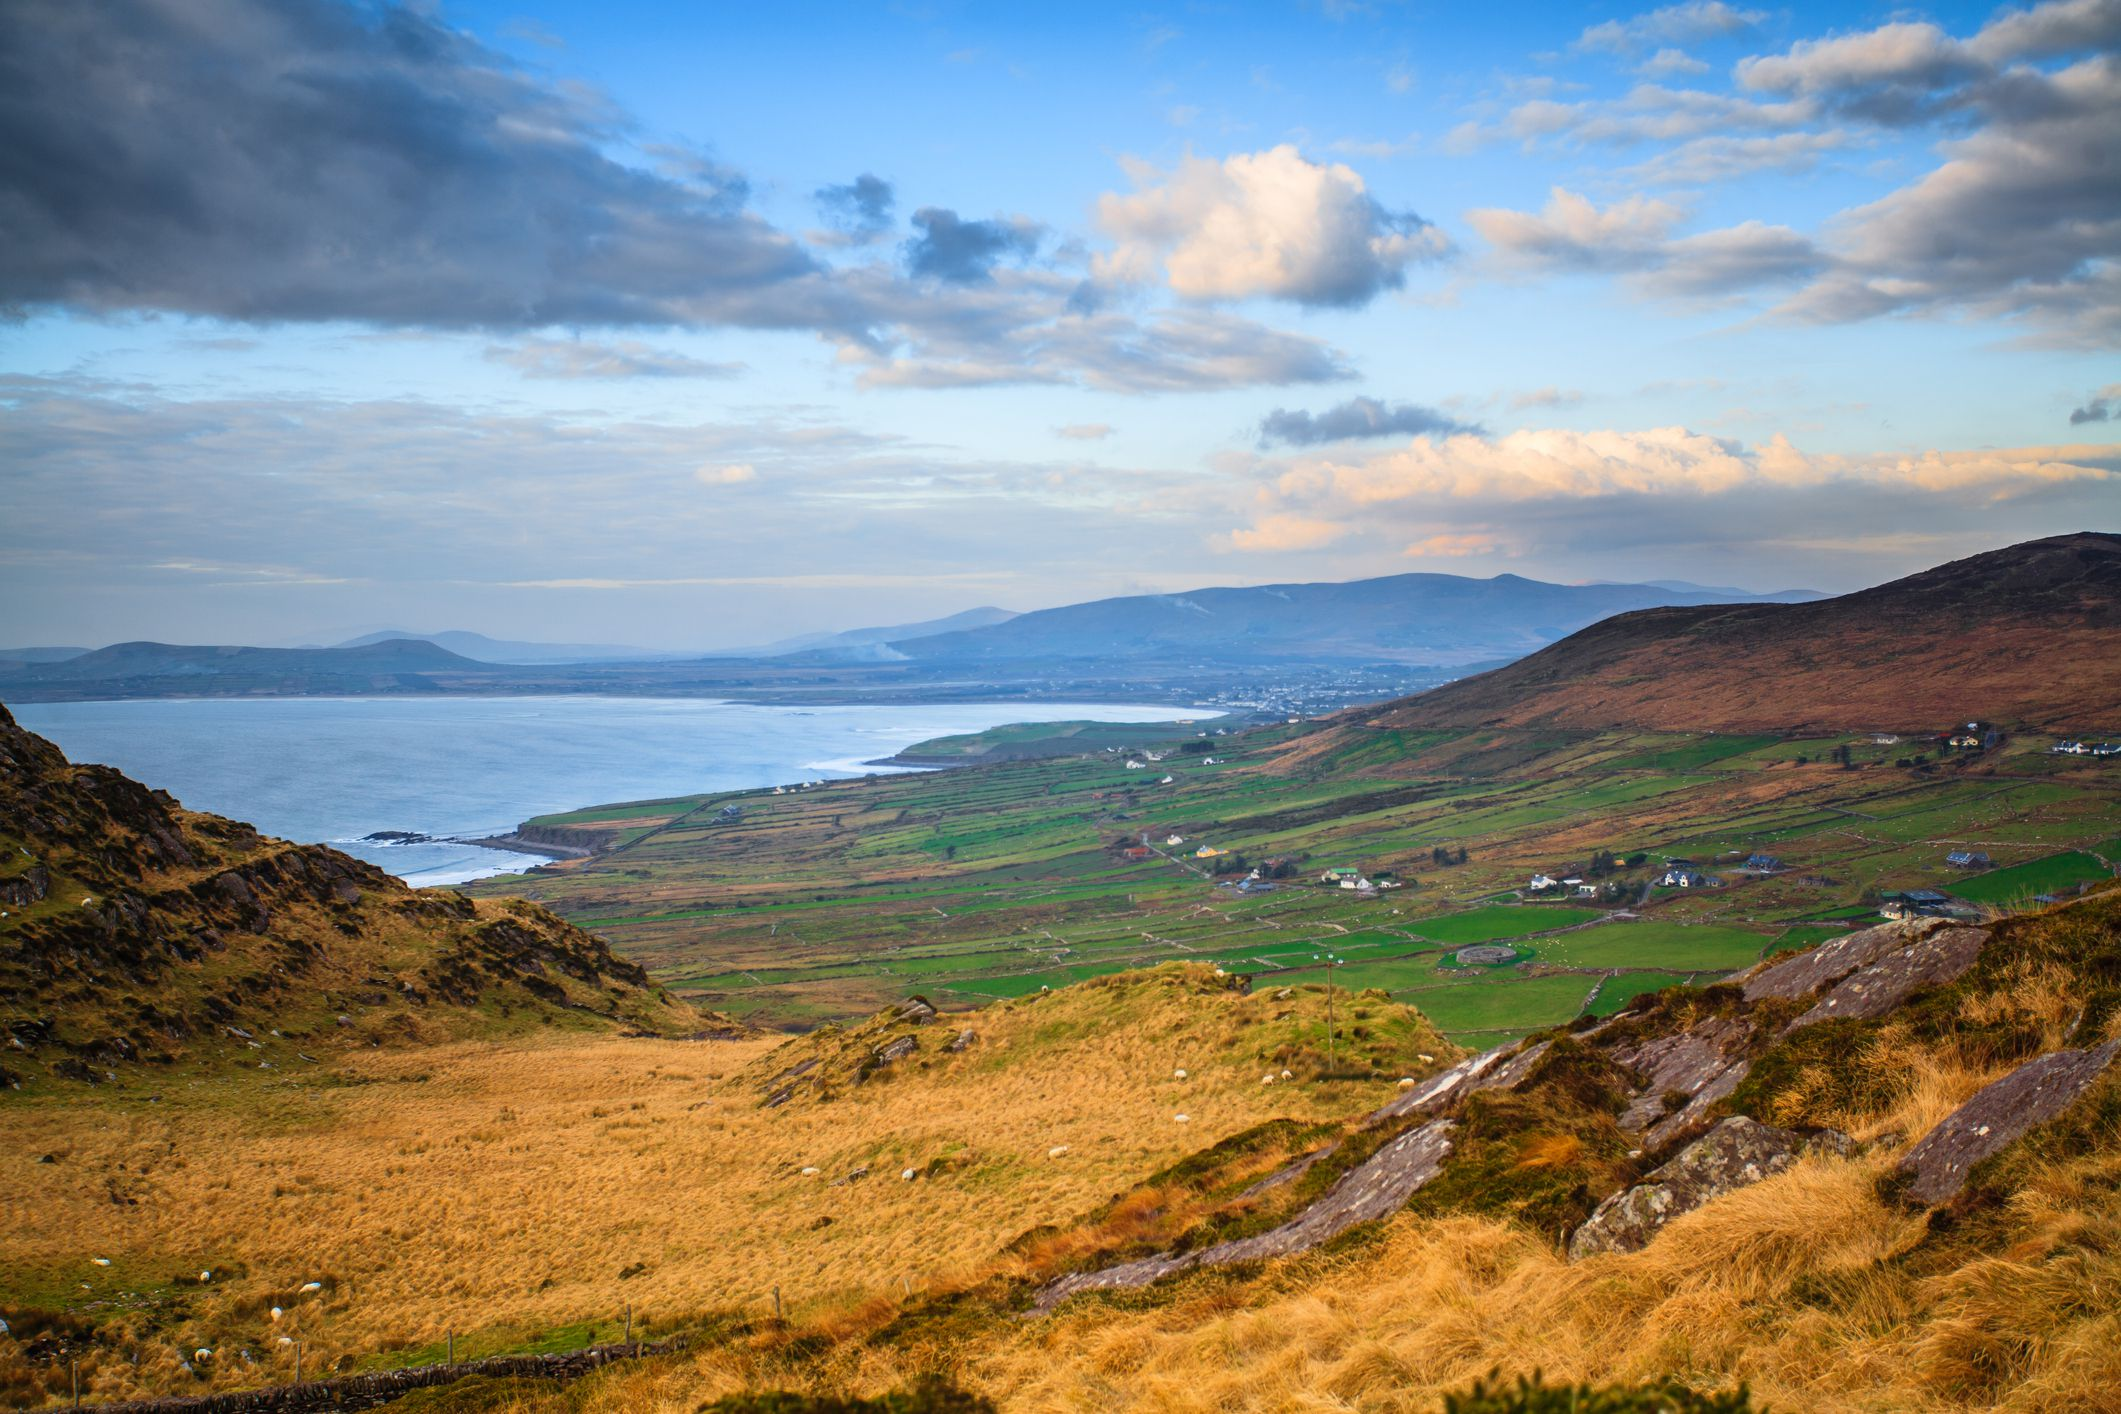 Visiting the ring of kerry ireland